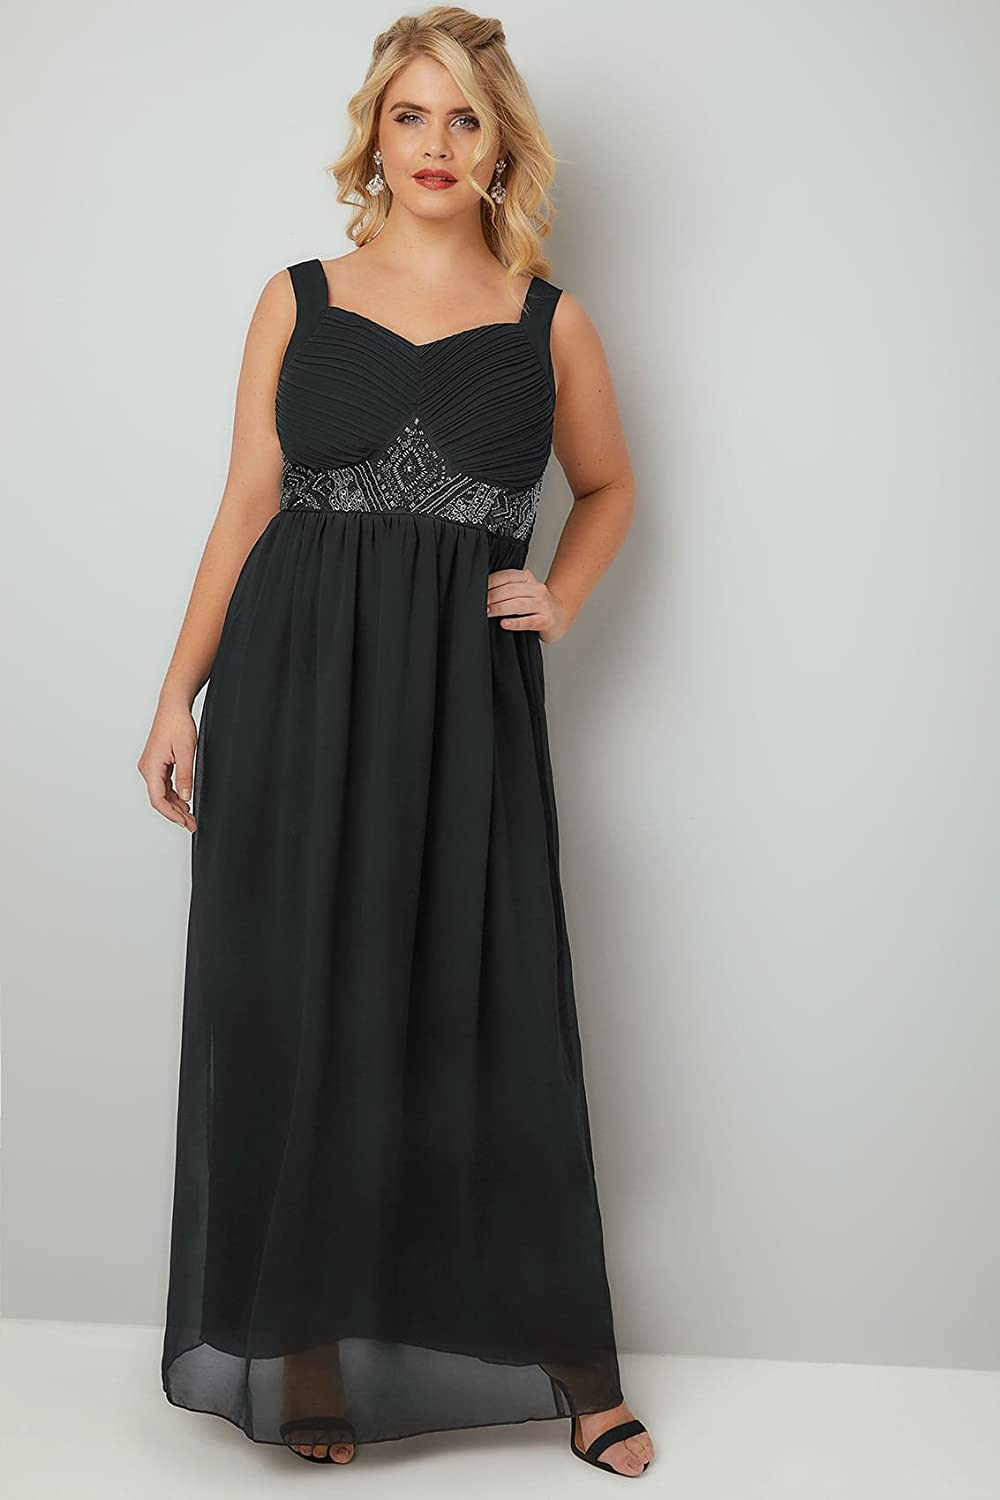 Yours Clothing Womens Plus Size Chiffon Maxi Dress with Embellished Waist Size 30-32 Black: Amazon.co.uk: Clothing